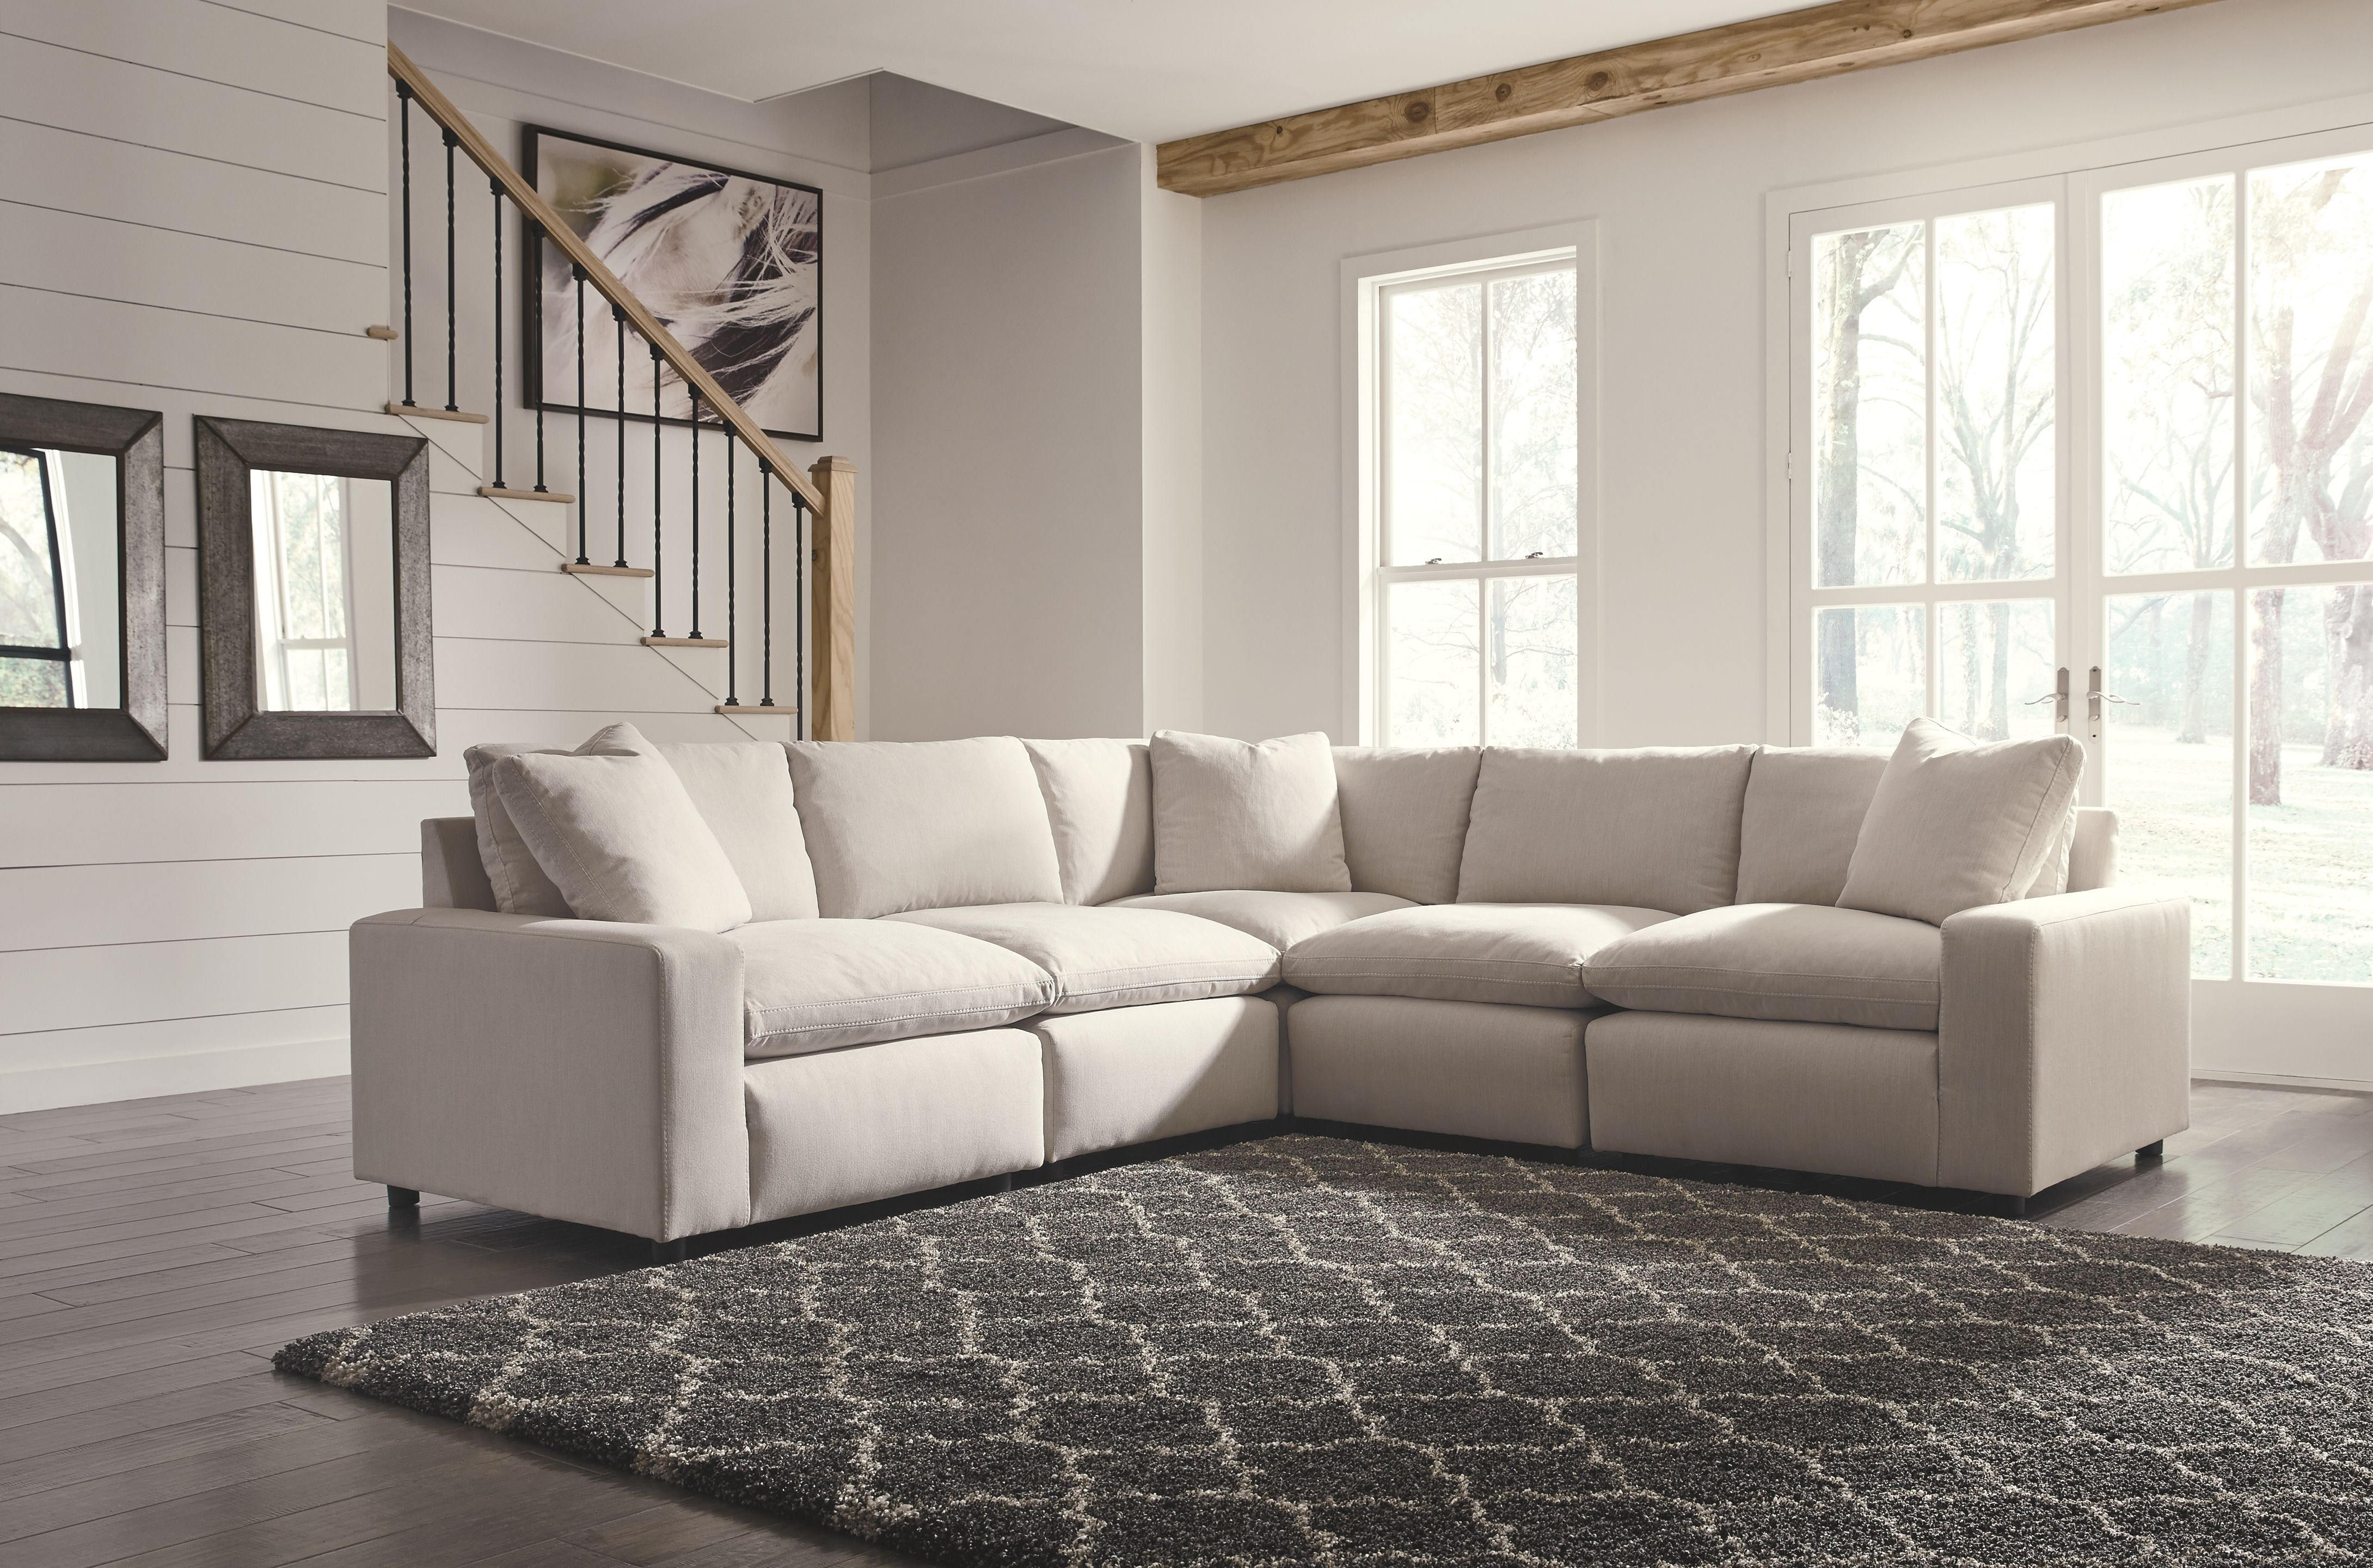 Savesto 5-Piece Sectional, Ivory | Products | Furniture ...